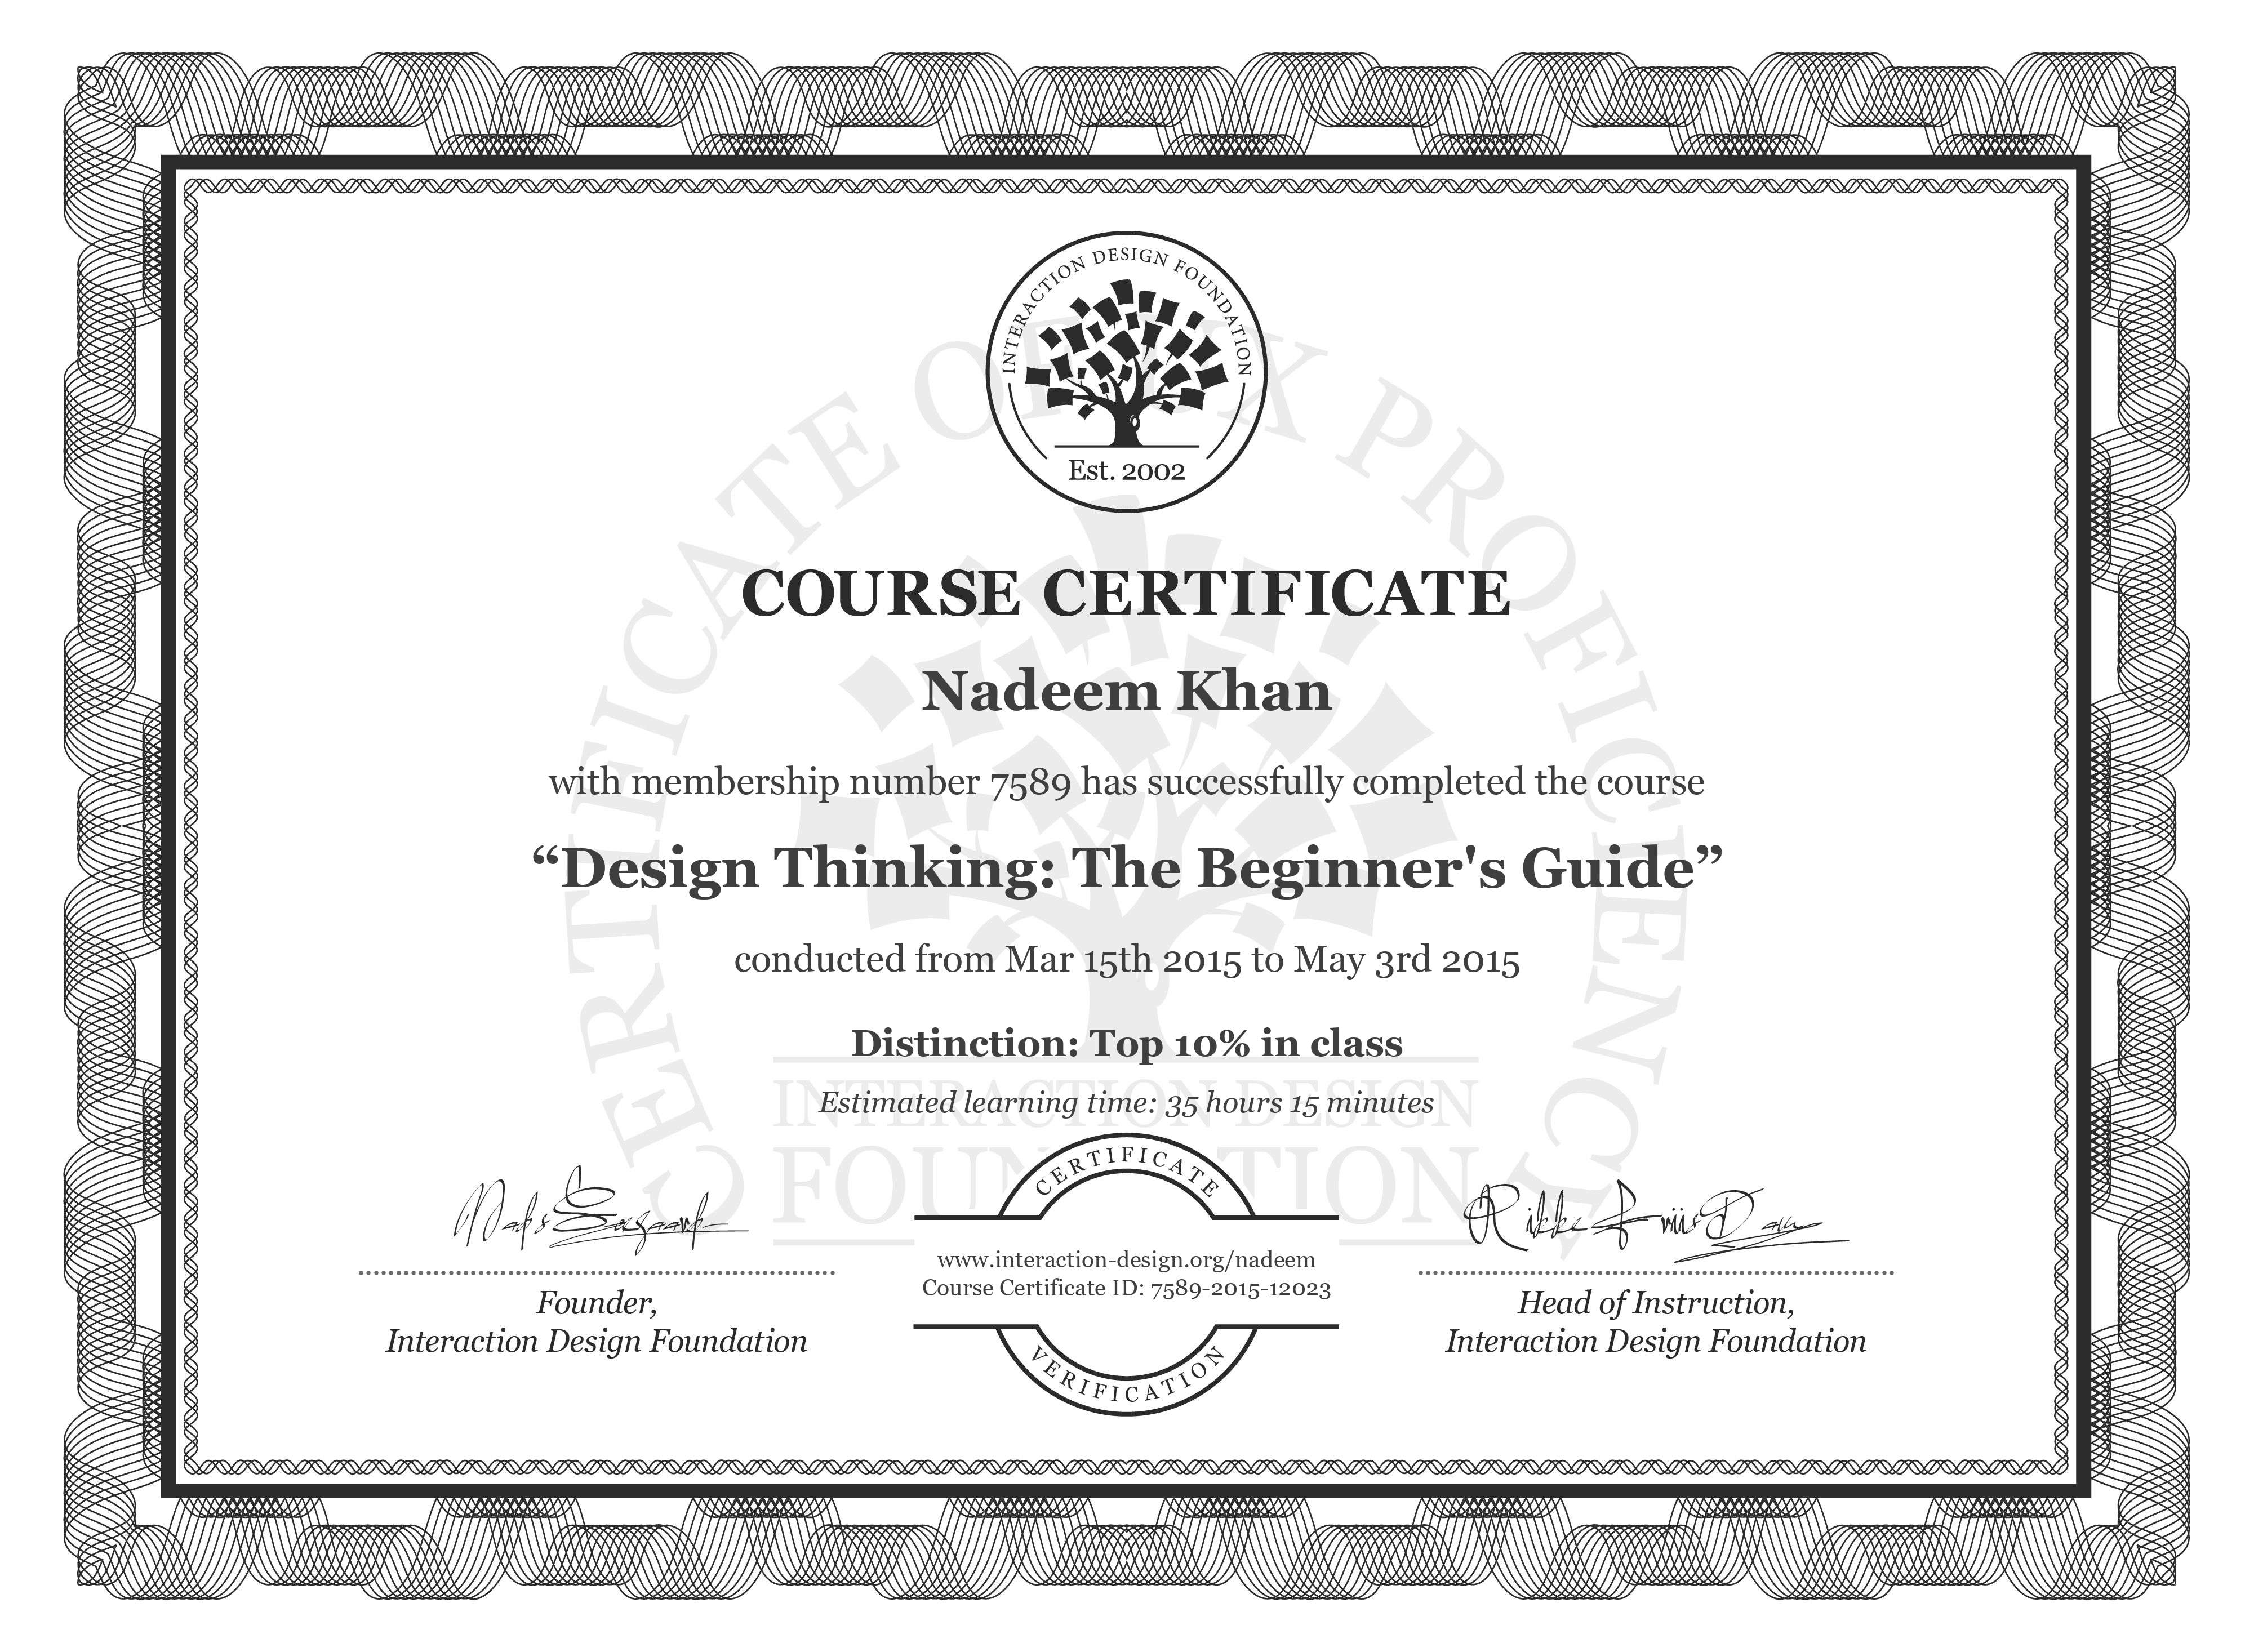 Nadeem Khan's Course Certificate: Design Thinking: The Beginner's Guide